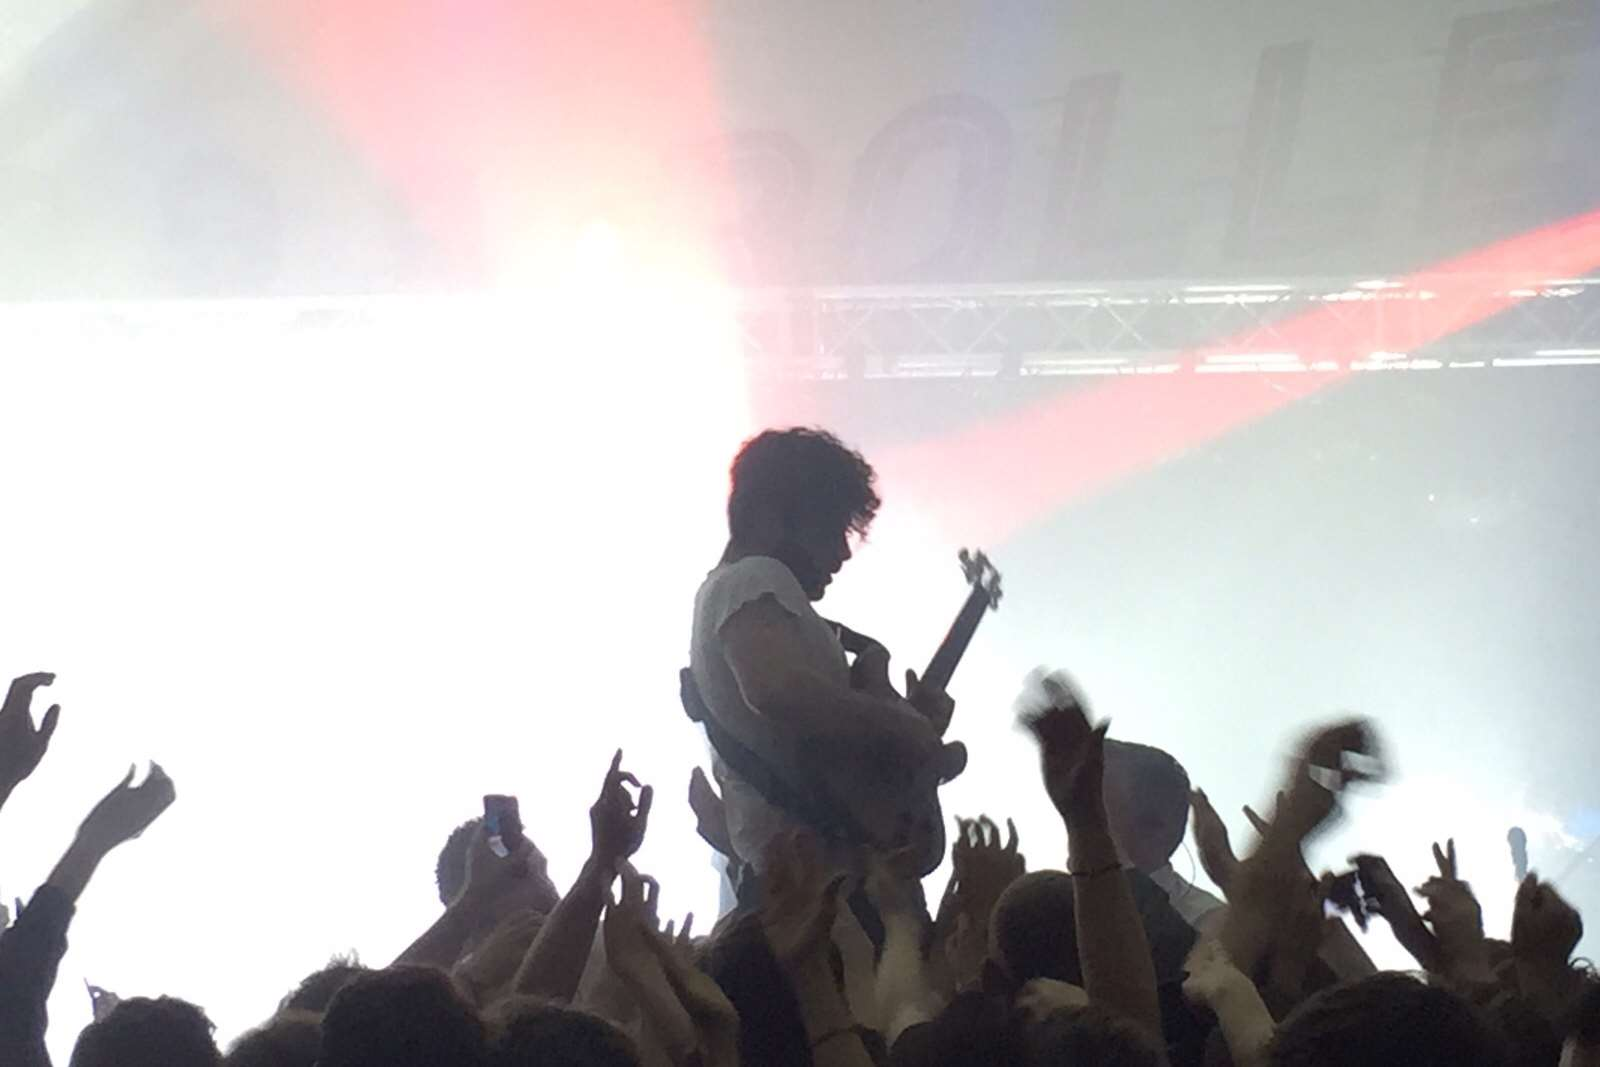 Foals frontman Yannis Philippakis had the crowd eating out the palm of his hand. Picture: Nick Chipperfield